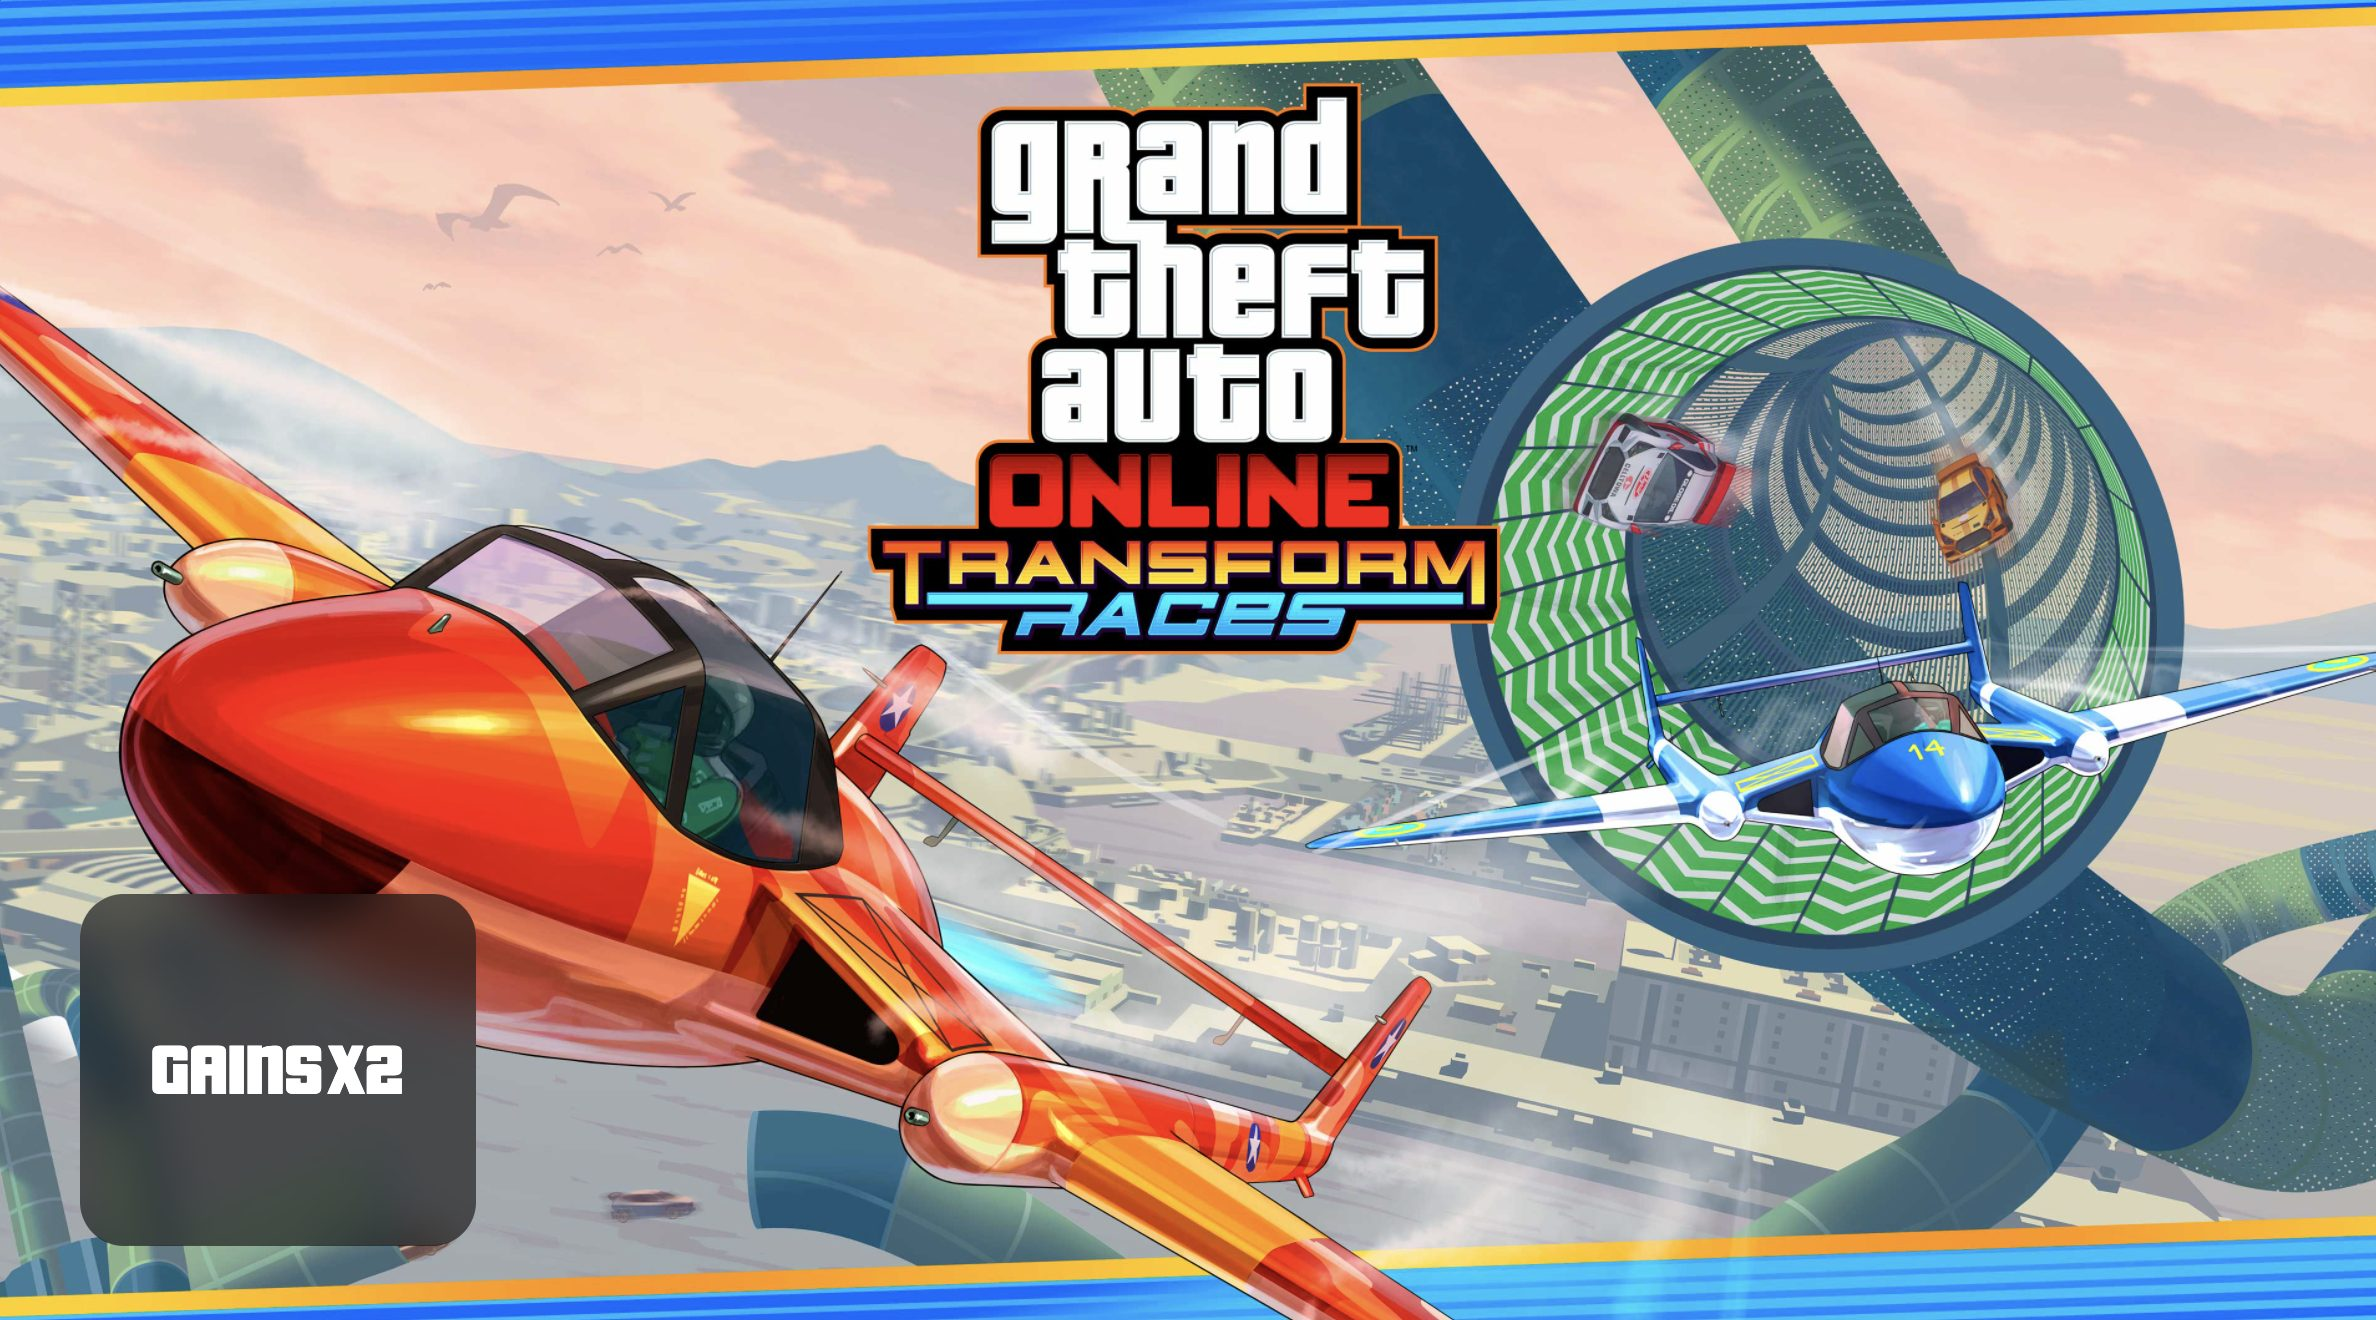 Gains doublés dans GTA Online Transform Races